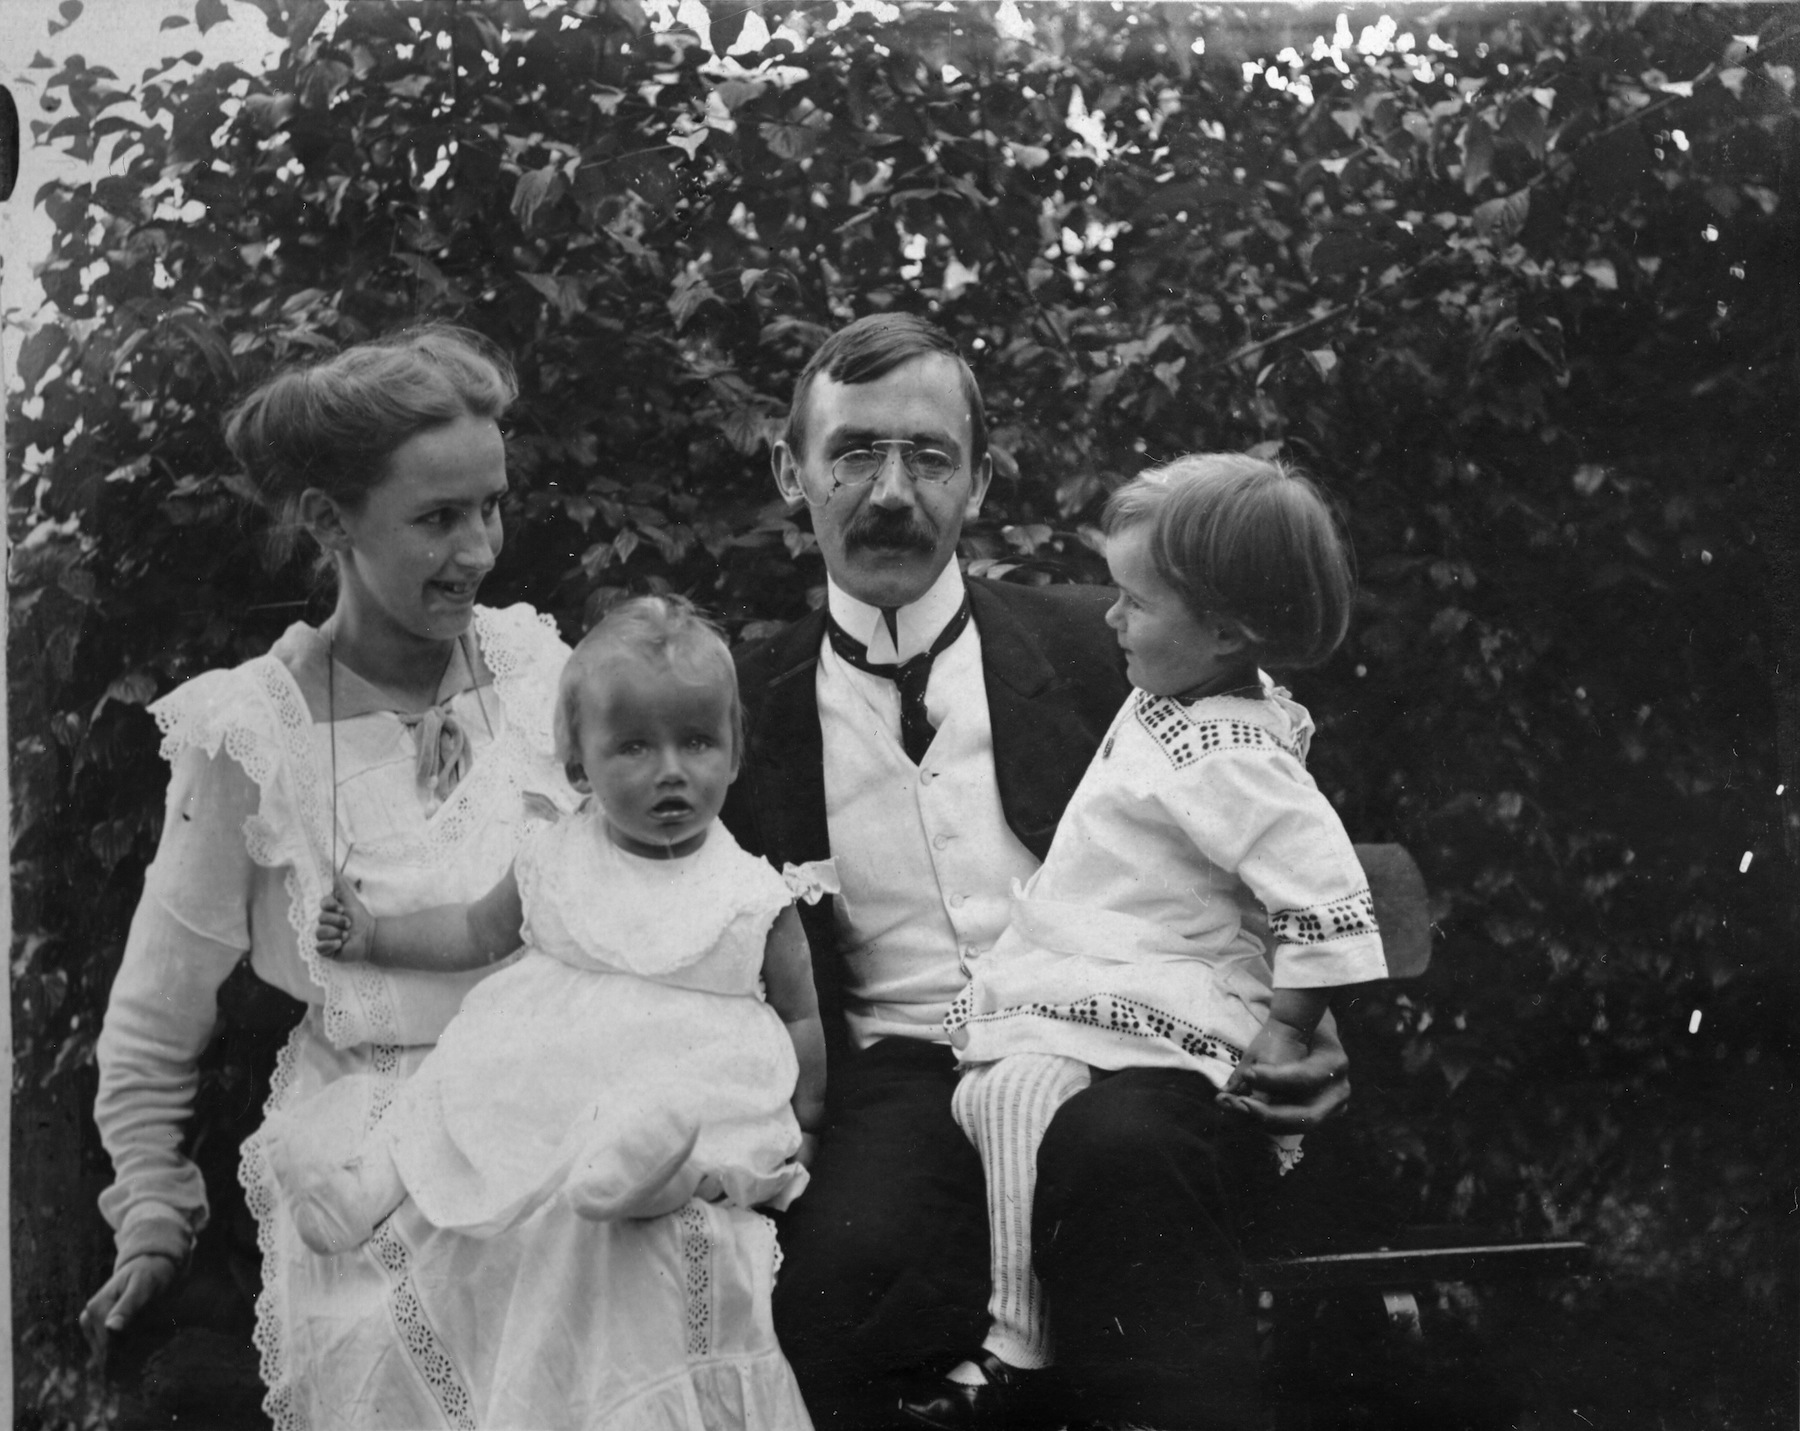 Karl and Nelly Barth with Markus (aged 1) and Franziska (2) in 1916, just as he was beginning work on his commentary on Romans.